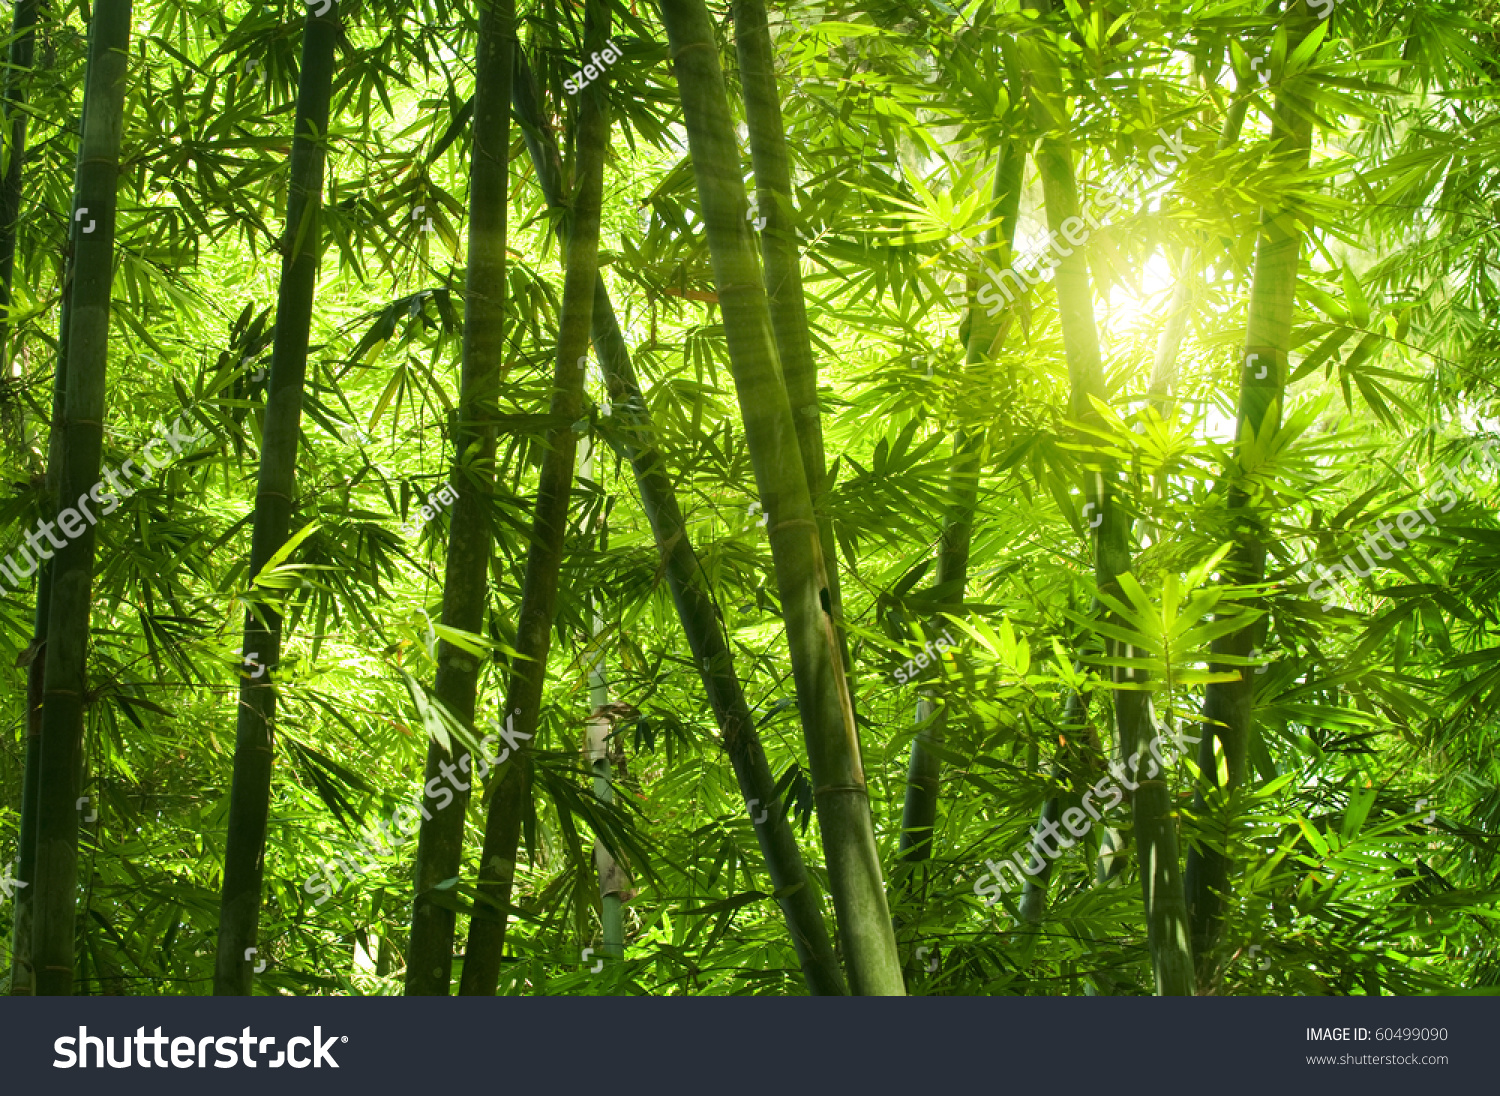 bamboo forest with morning sunlight wall mural ifmore asian mural